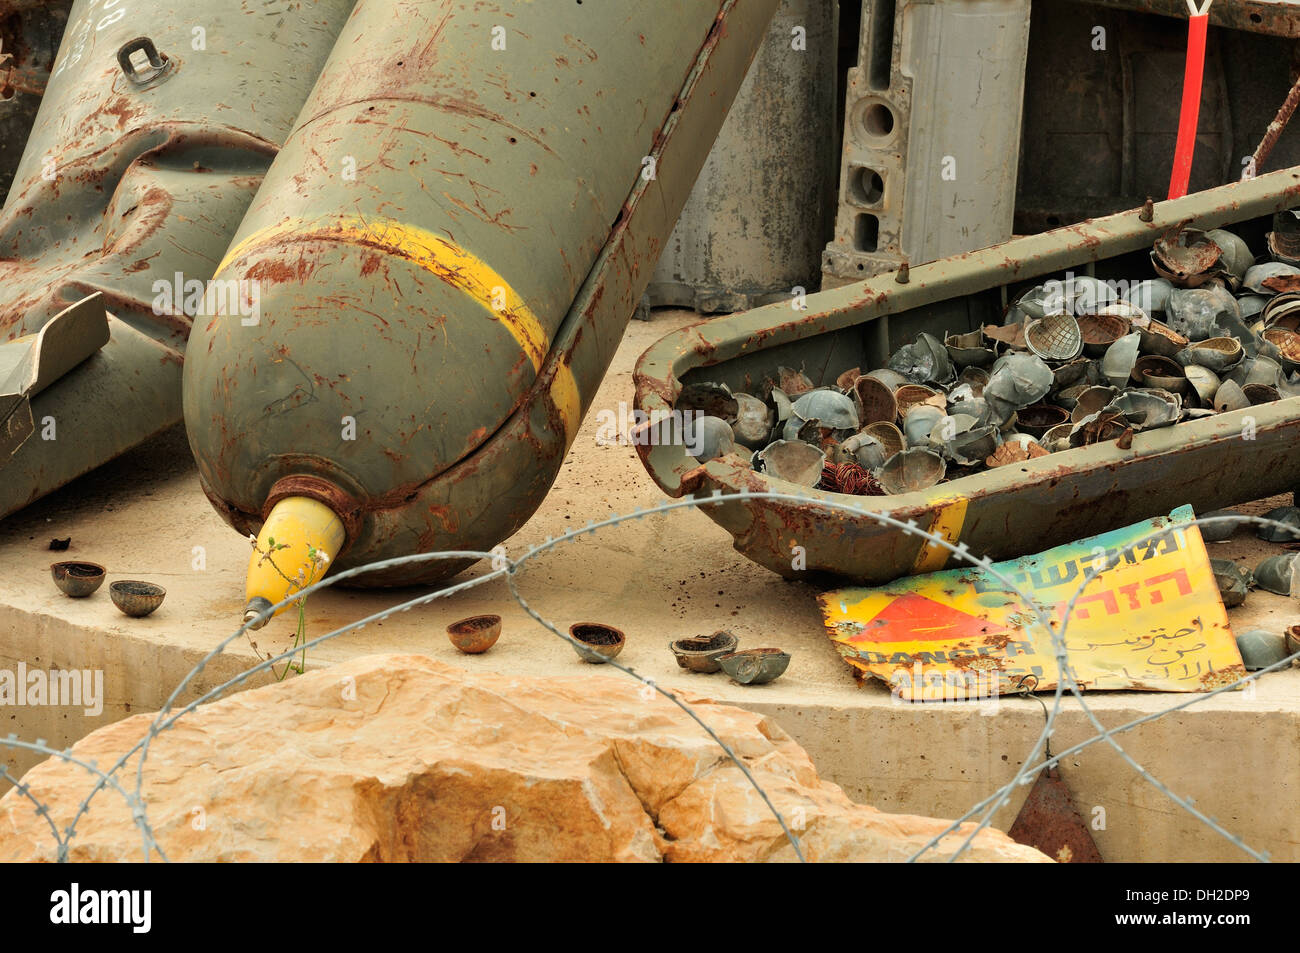 Cluster bombs, or cluster munitions, are a weapons containing multiple explosive submunitions. Mleeta, Lebanon - Stock Image